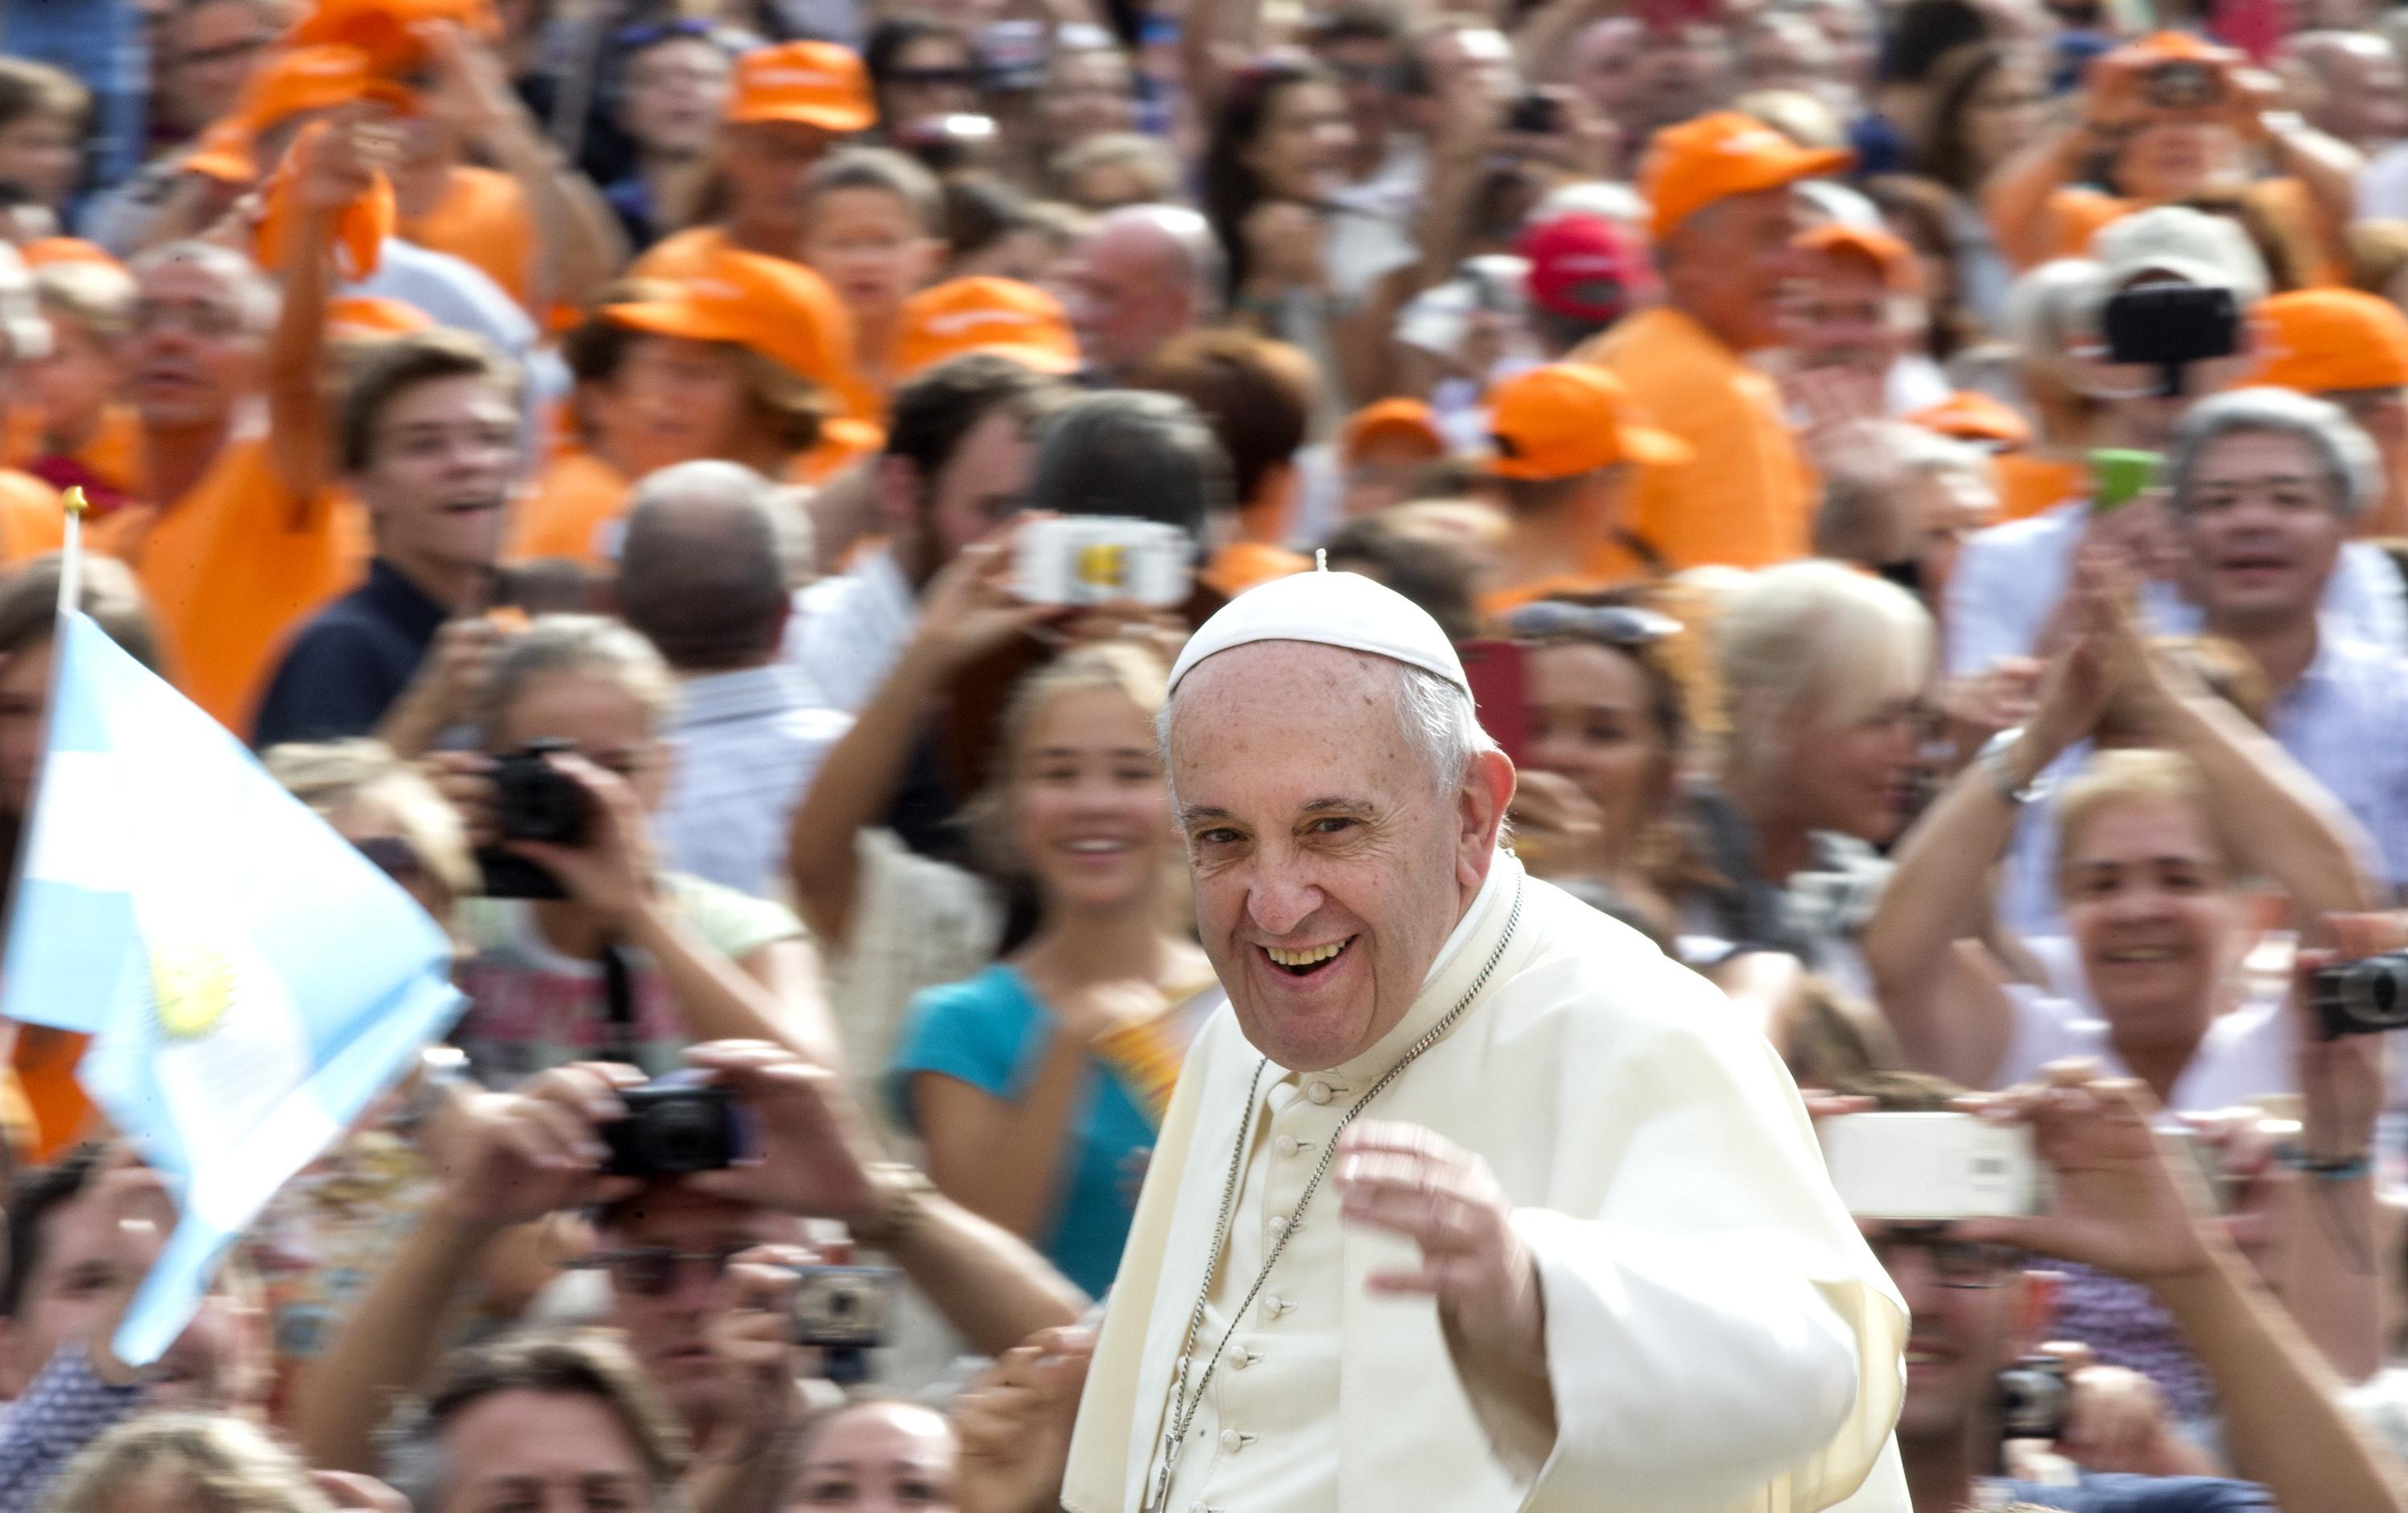 Pope Francis greets the faithful at the General Audience of Wednesday